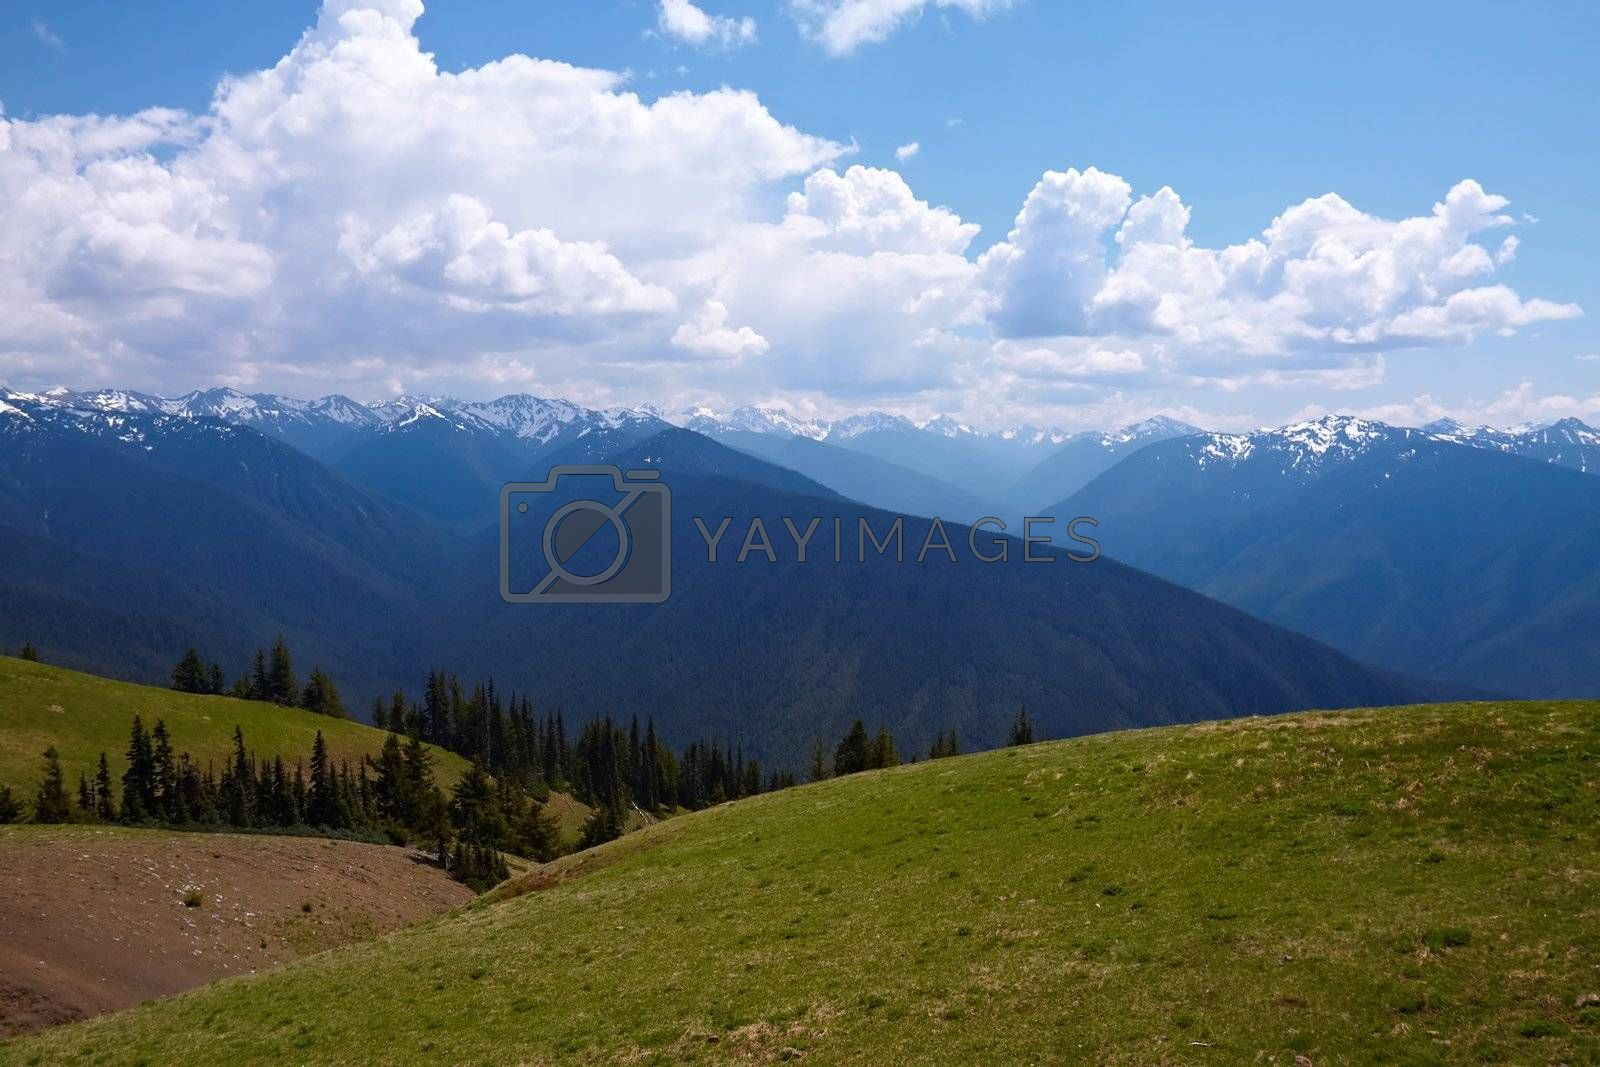 Royalty free image of Mountain Landscape by LoonChild